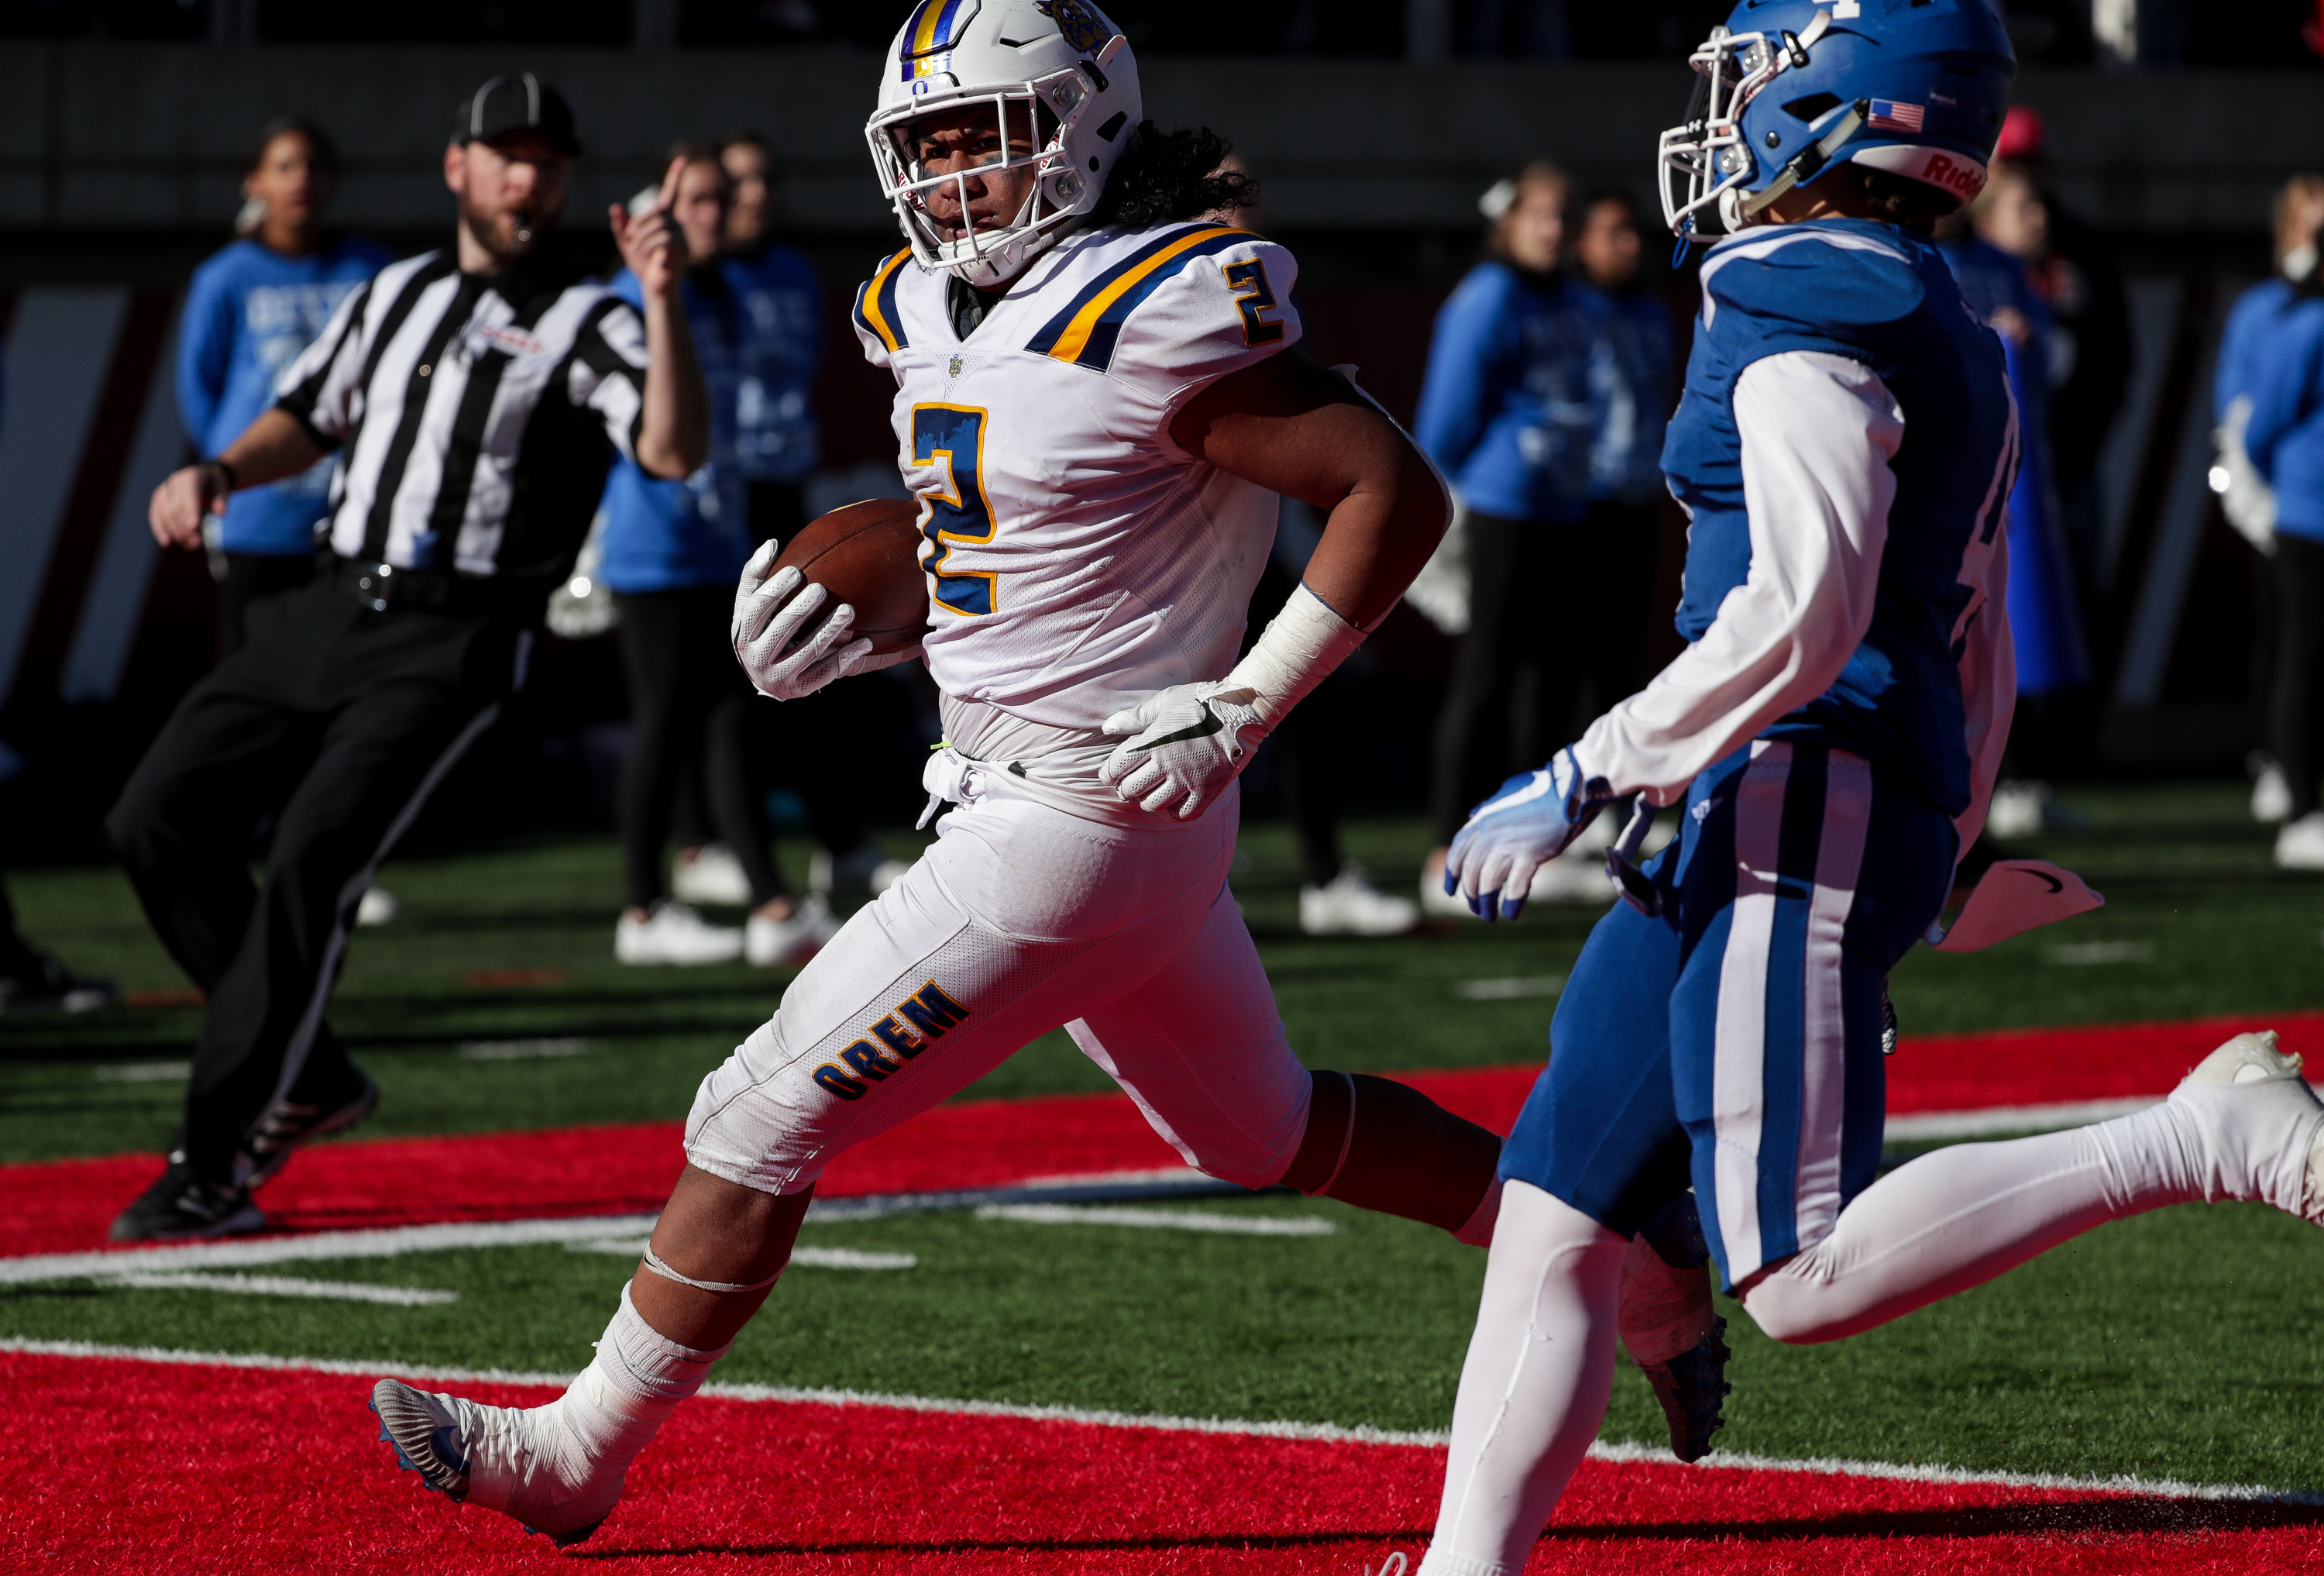 Orem's Noah Sewell runs the ball in for a touchdown, putting Orem up 60-13 over Dixie, in the 4A football state championship game at Rice-Eccles Stadium in Salt Lake City on Friday, Nov. 16, 2018.